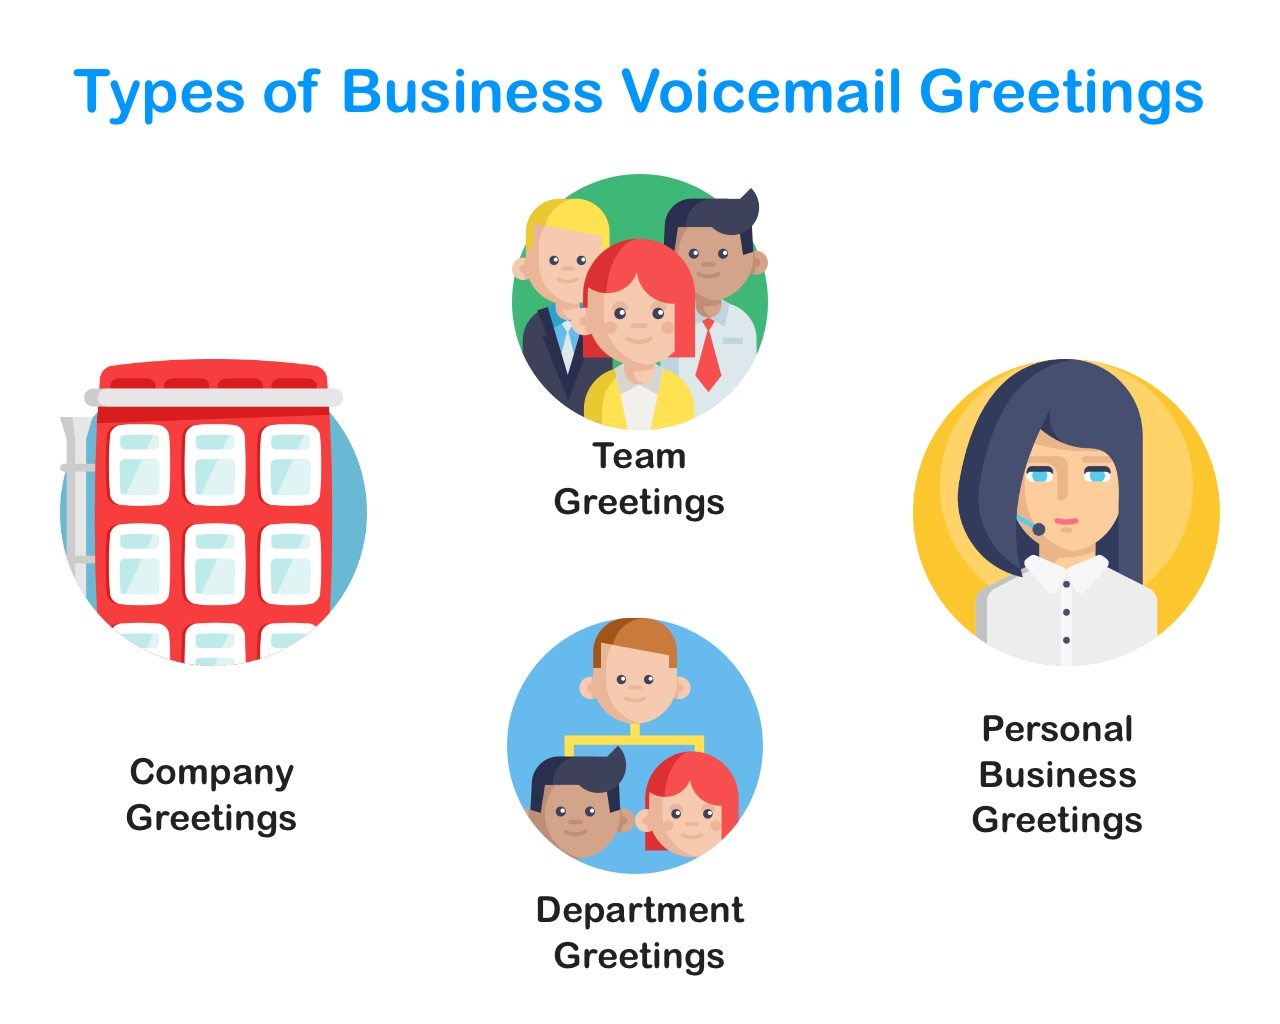 Types of Small Business Professional Voicemail Greetings